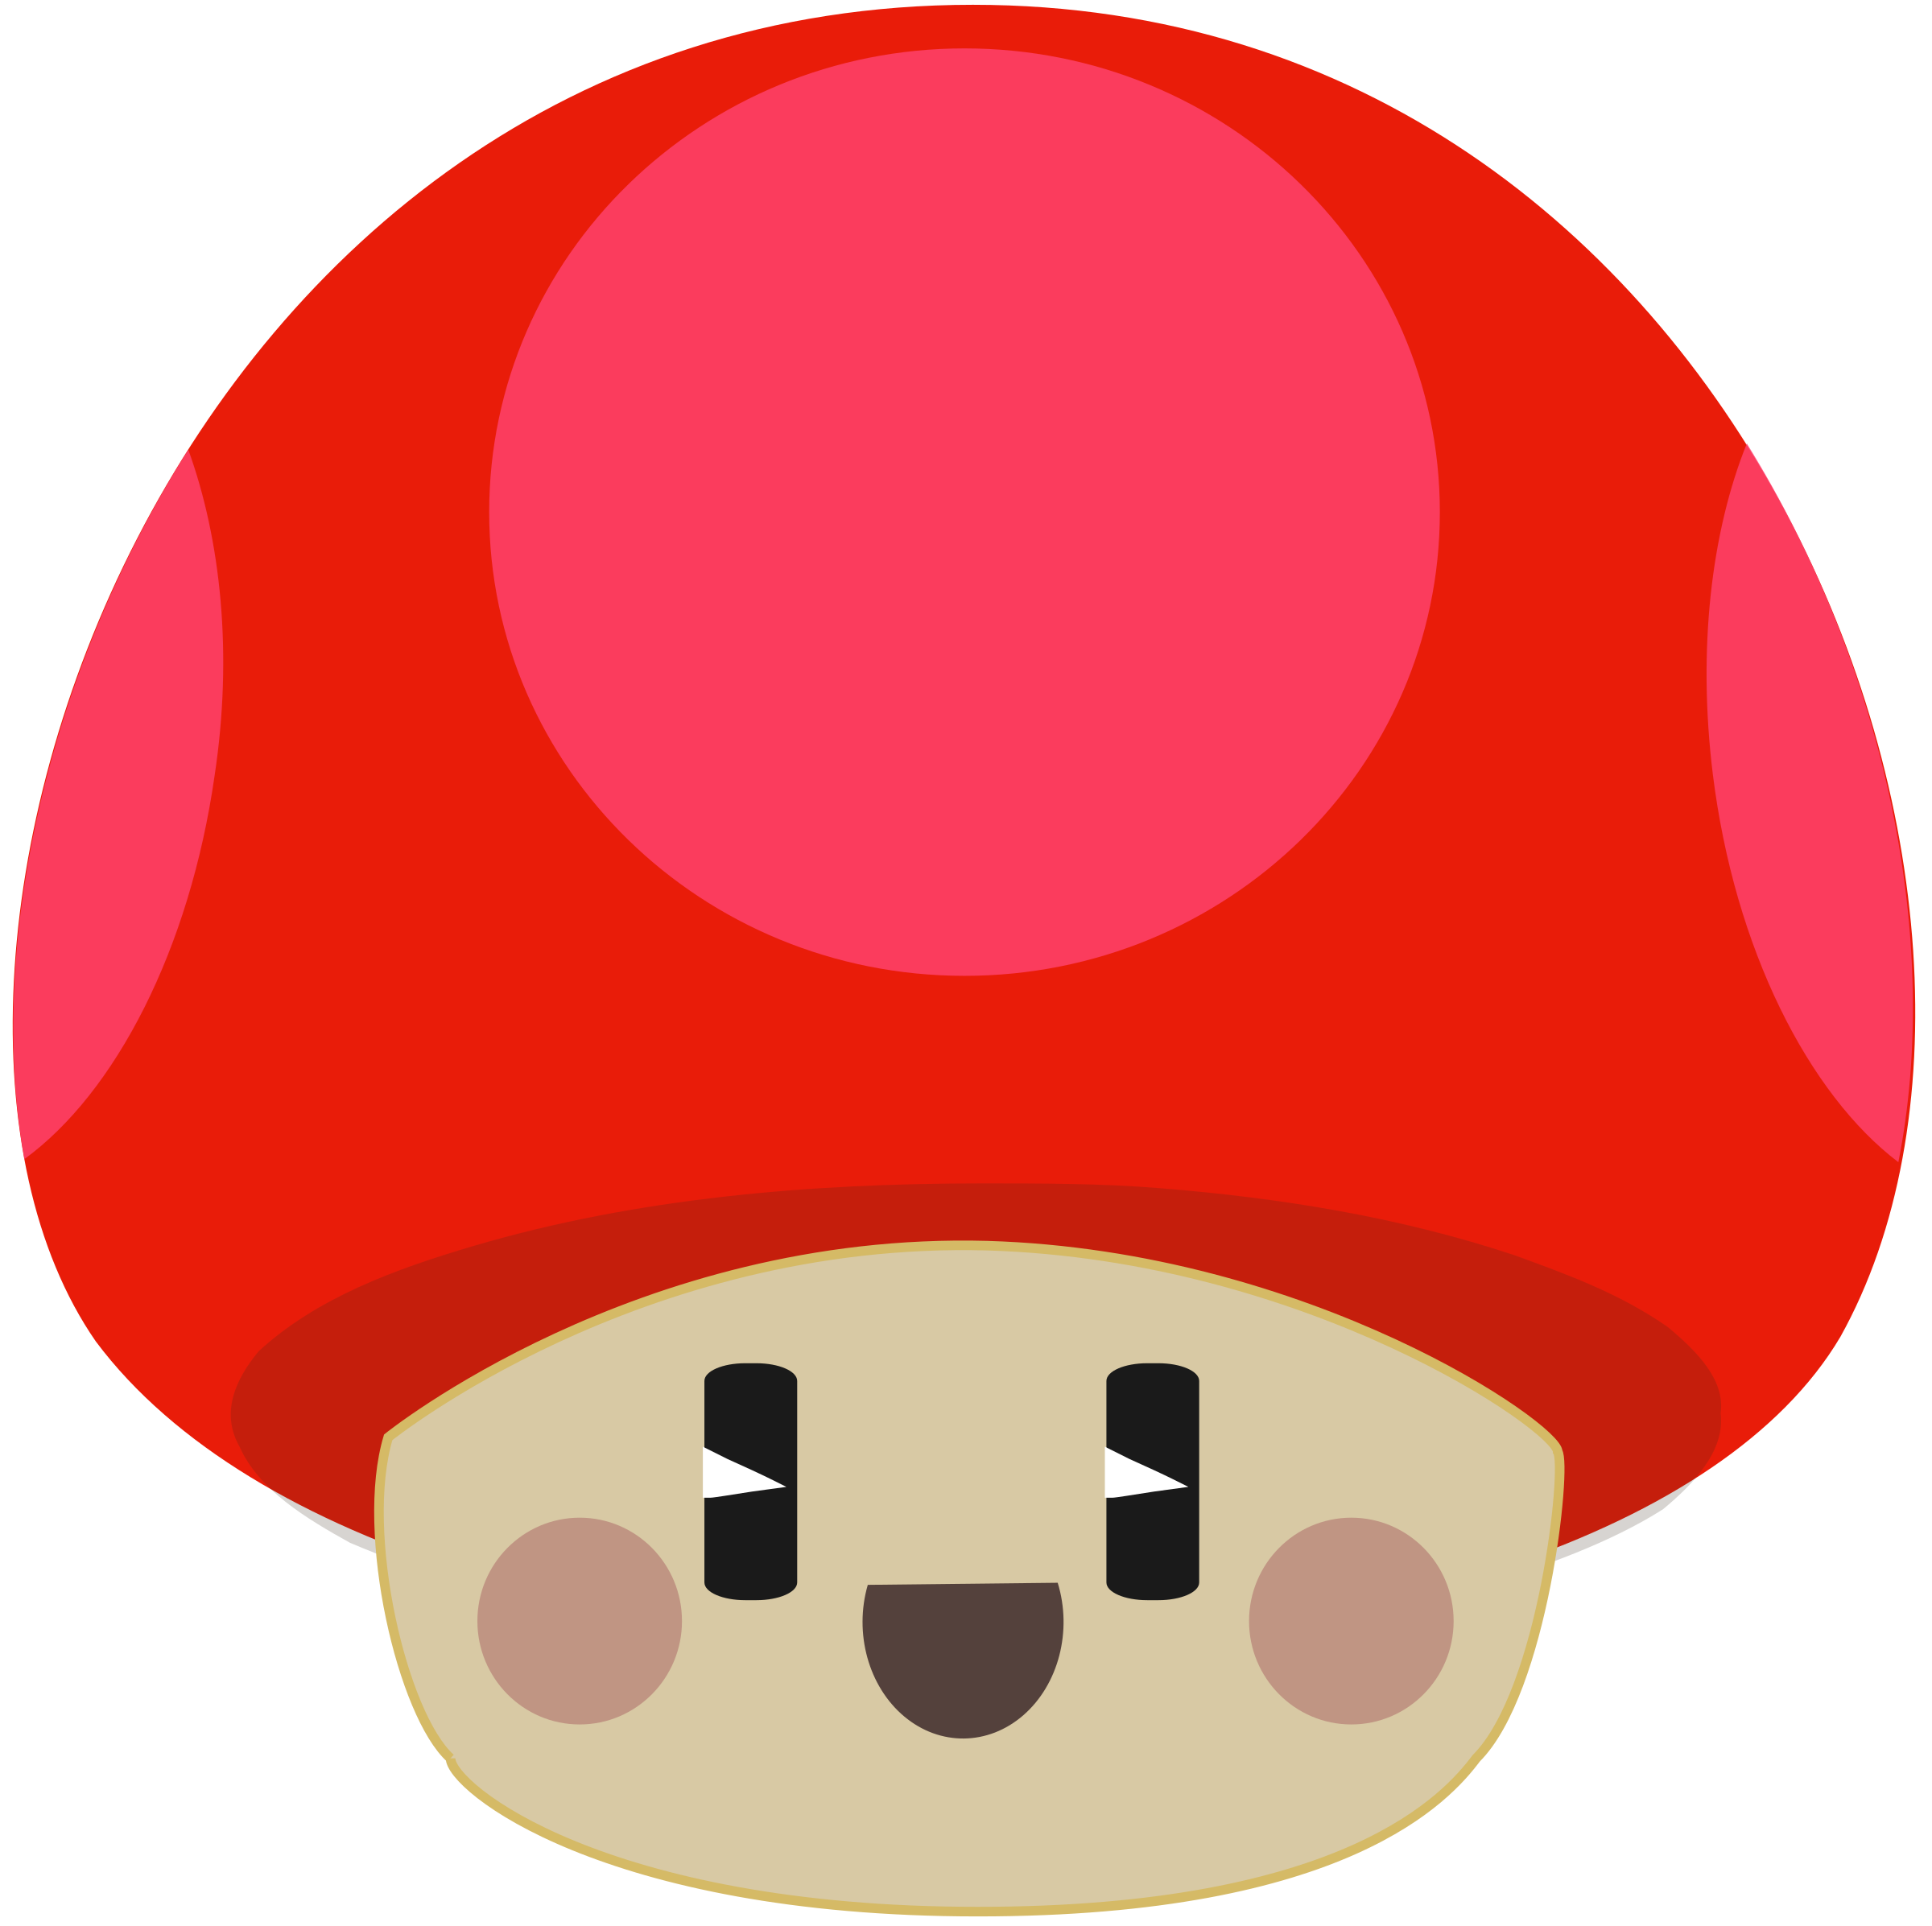 Mushrooms clipart animated. Cute mushroom at getdrawings